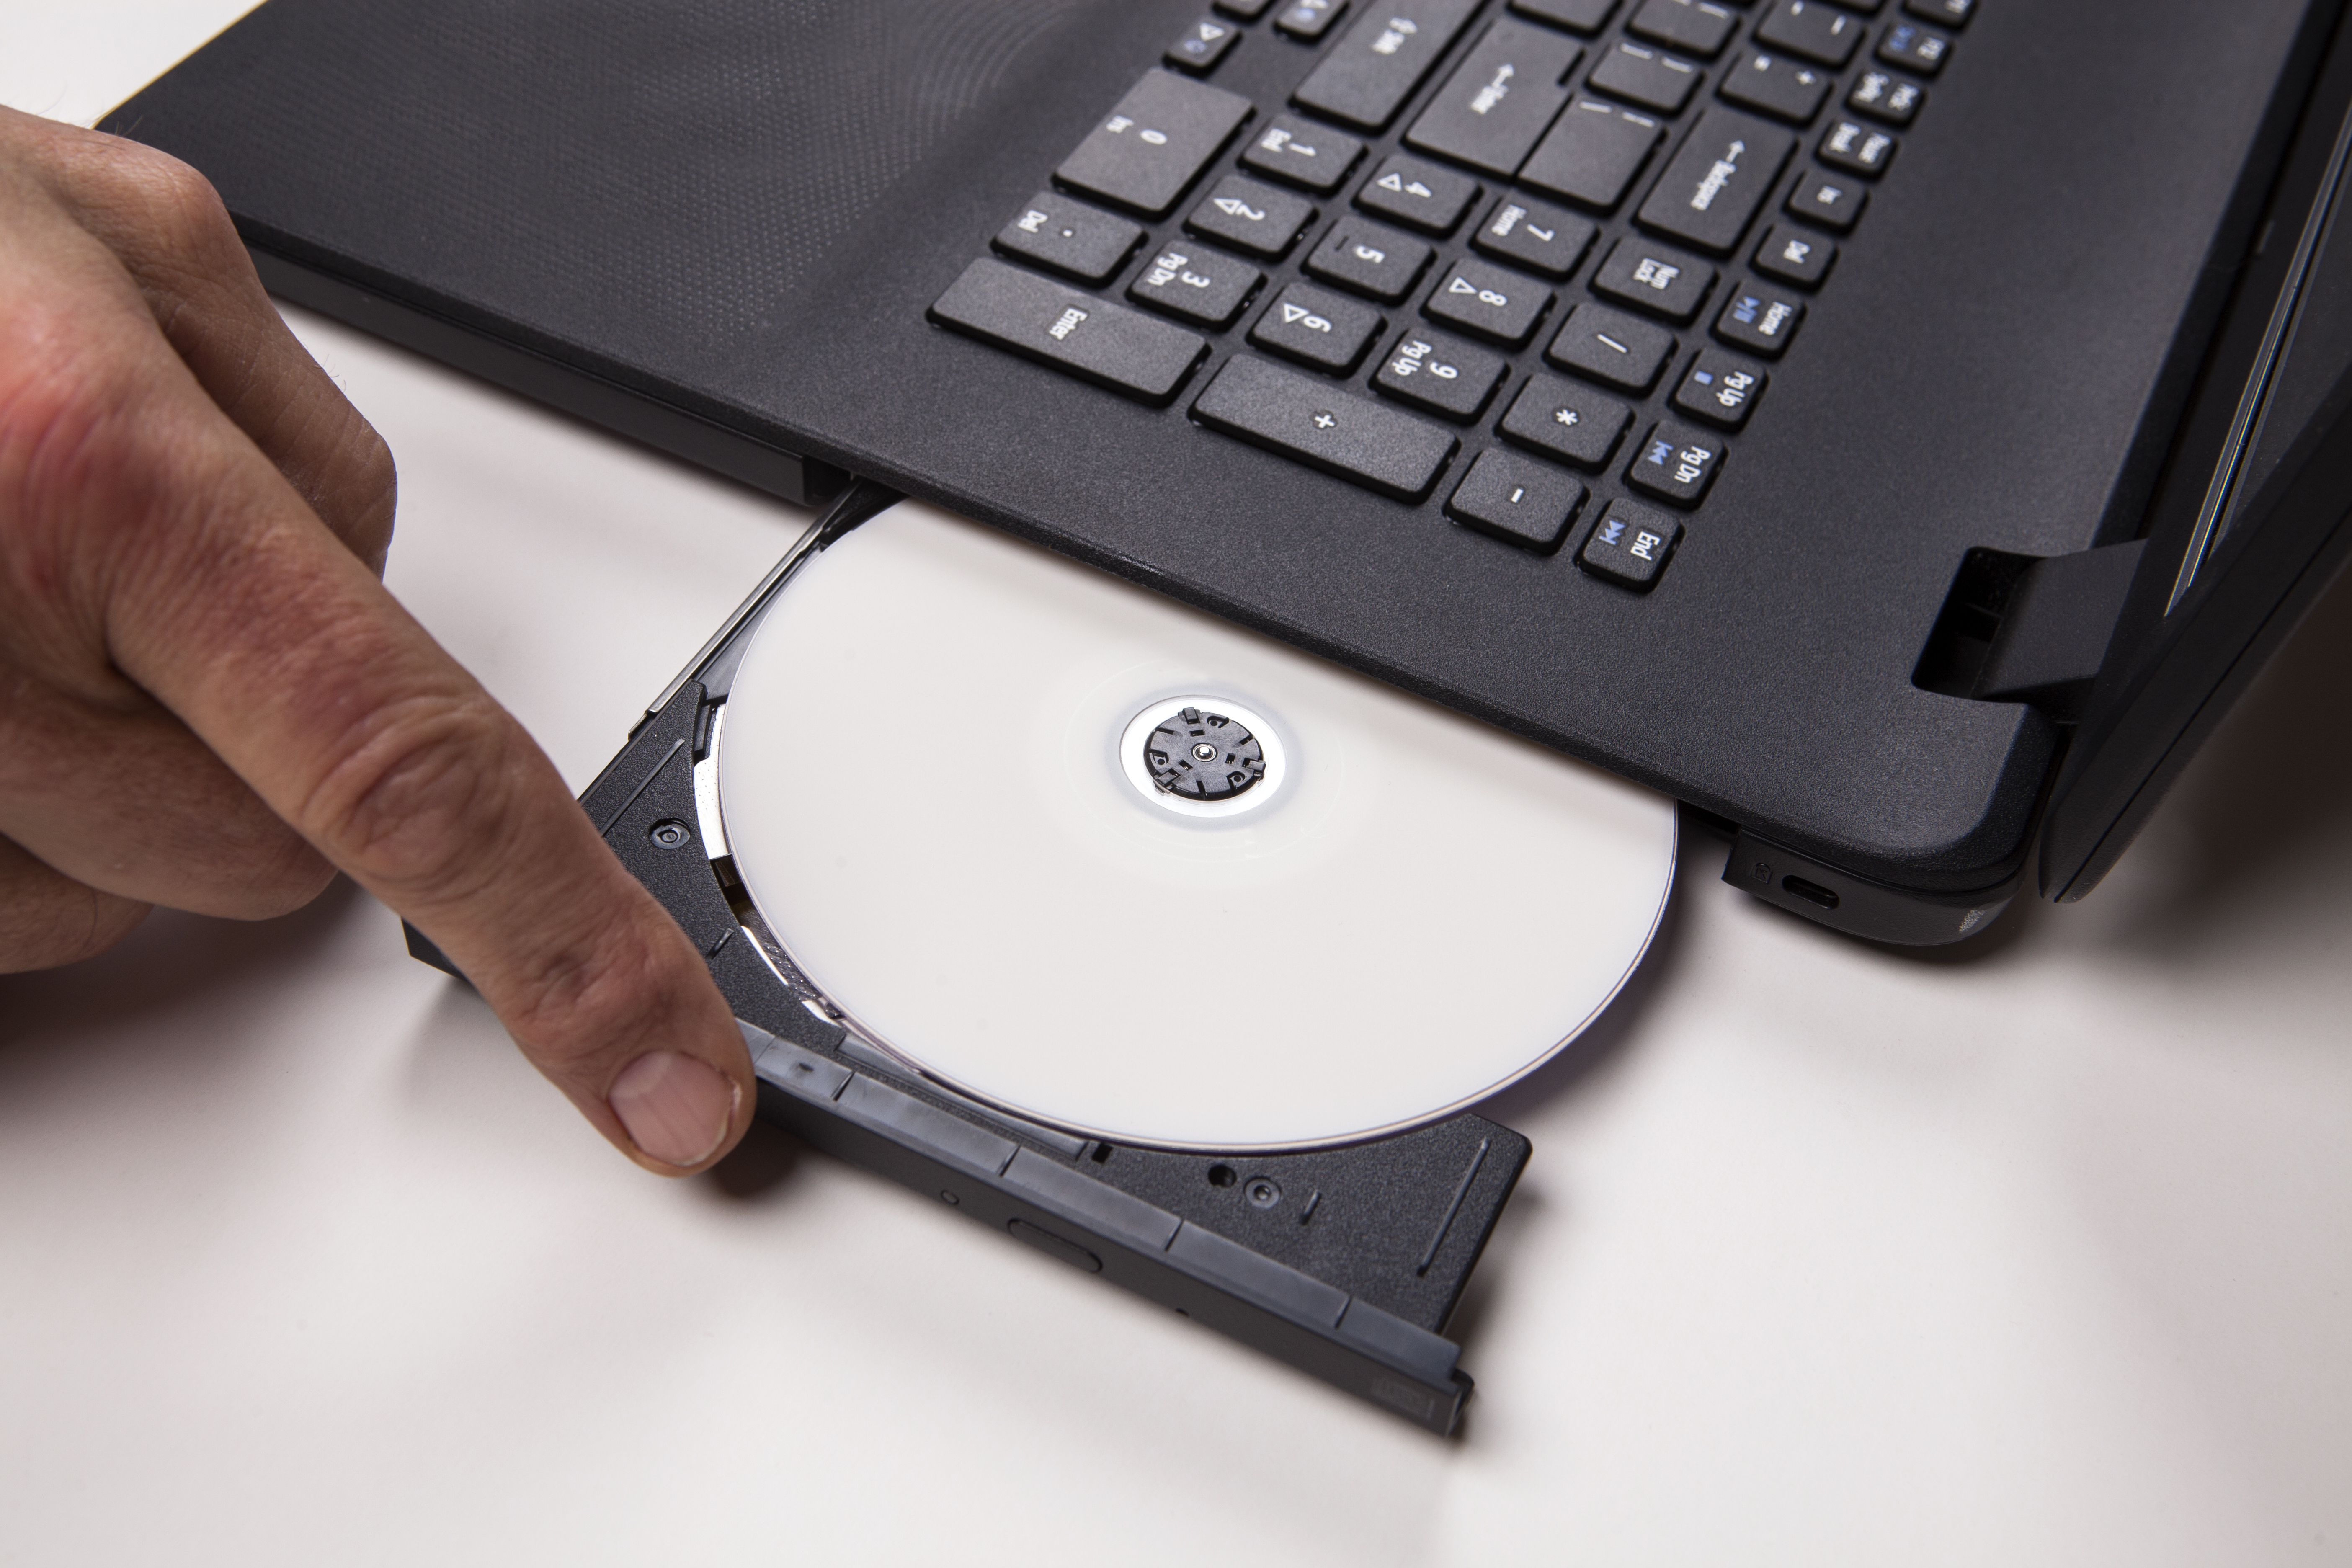 Loading CD into laptop